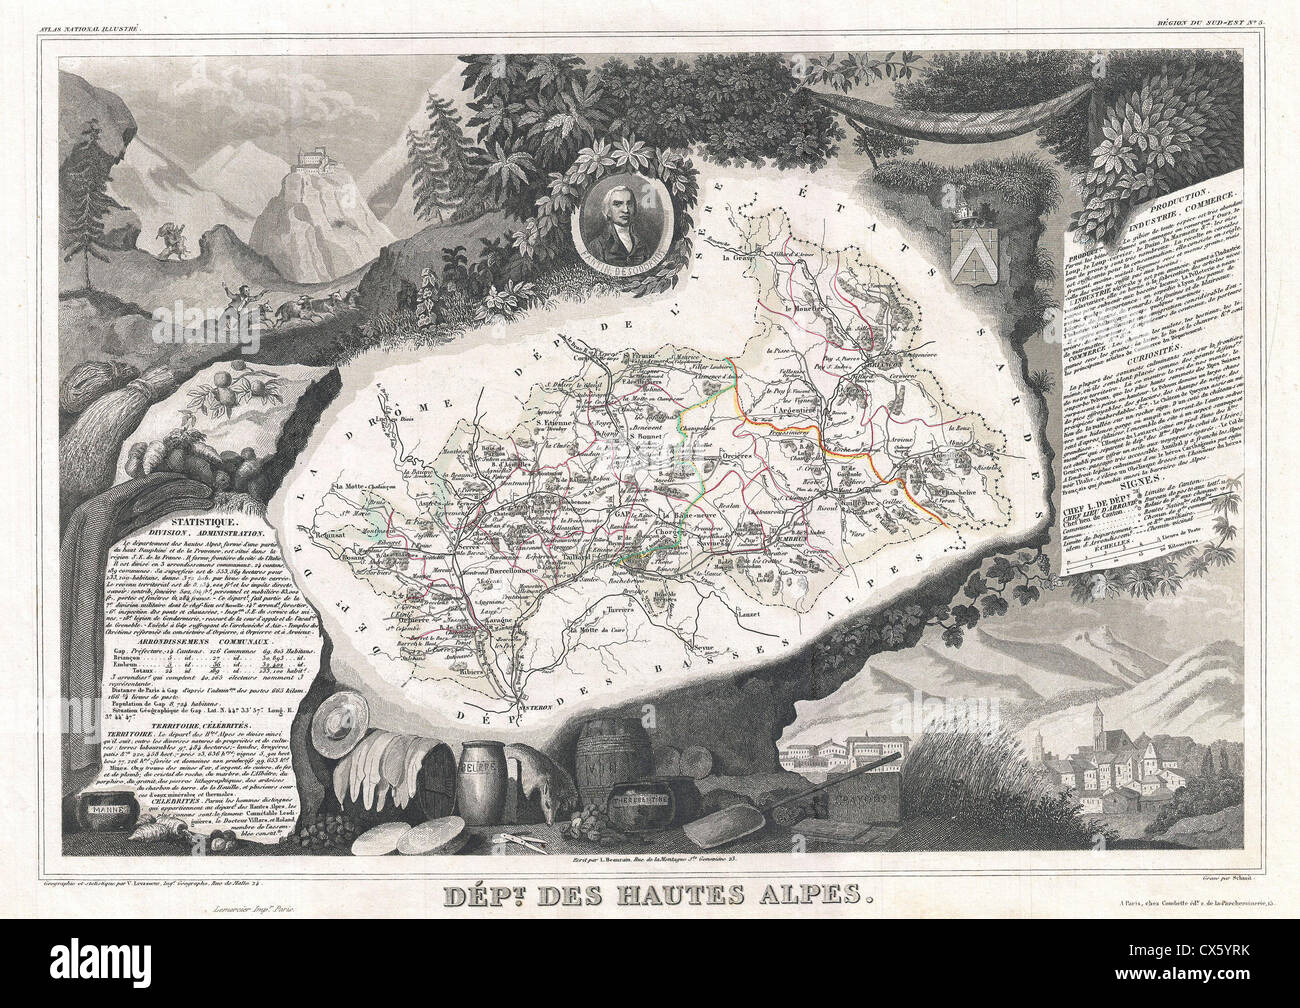 1852 Levasseur Map of the Department Hautes Alpes, France - Stock Image